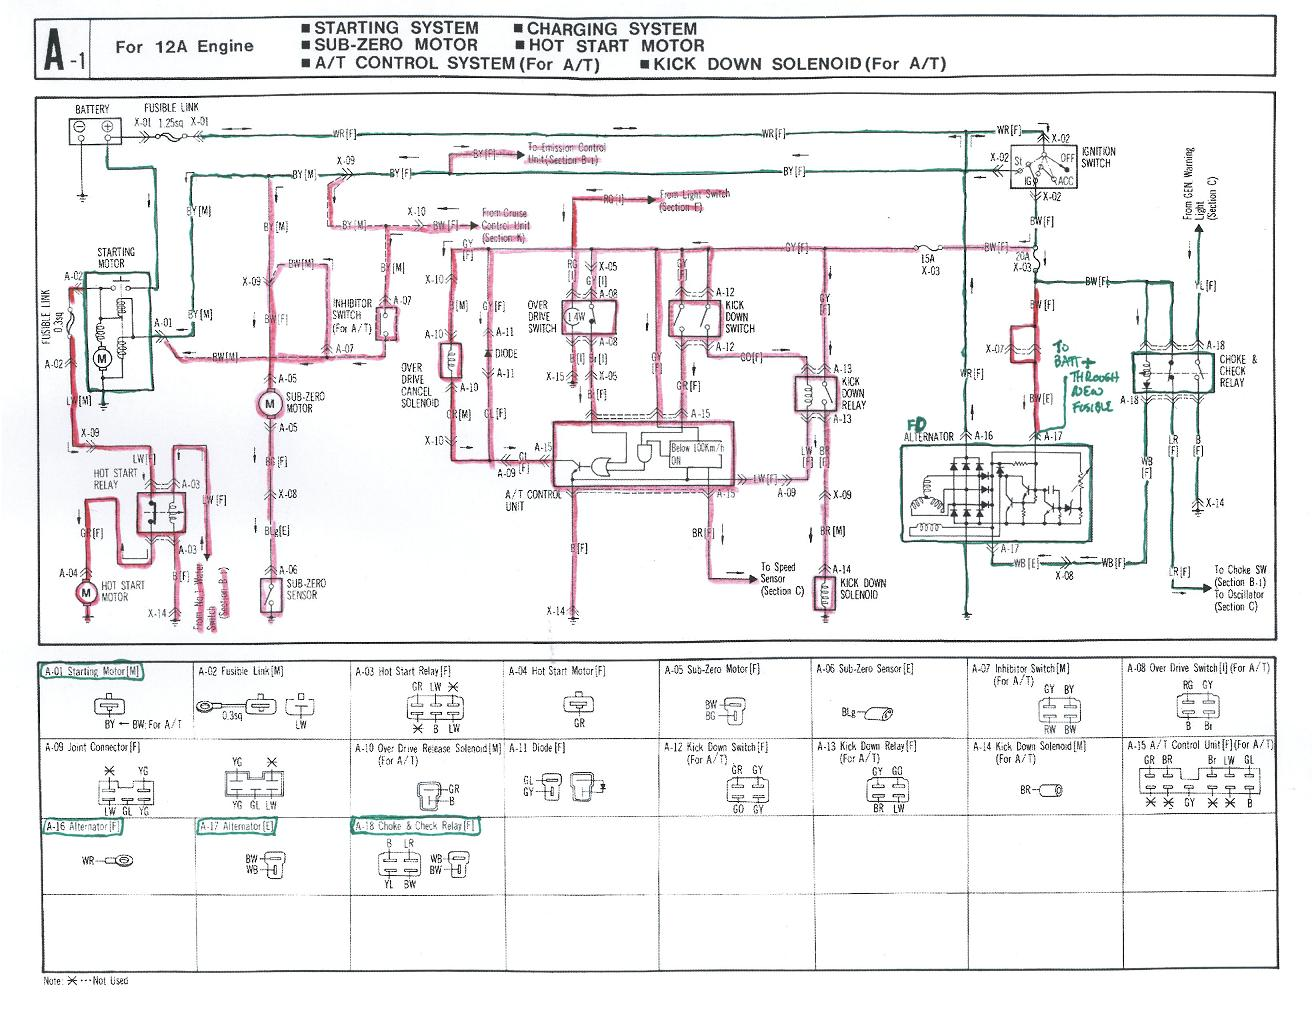 5915A59 Sterling Ignition Switch Wiring Diagram - Wiring Diagram LN4 |  Wiring LibraryWiring Library